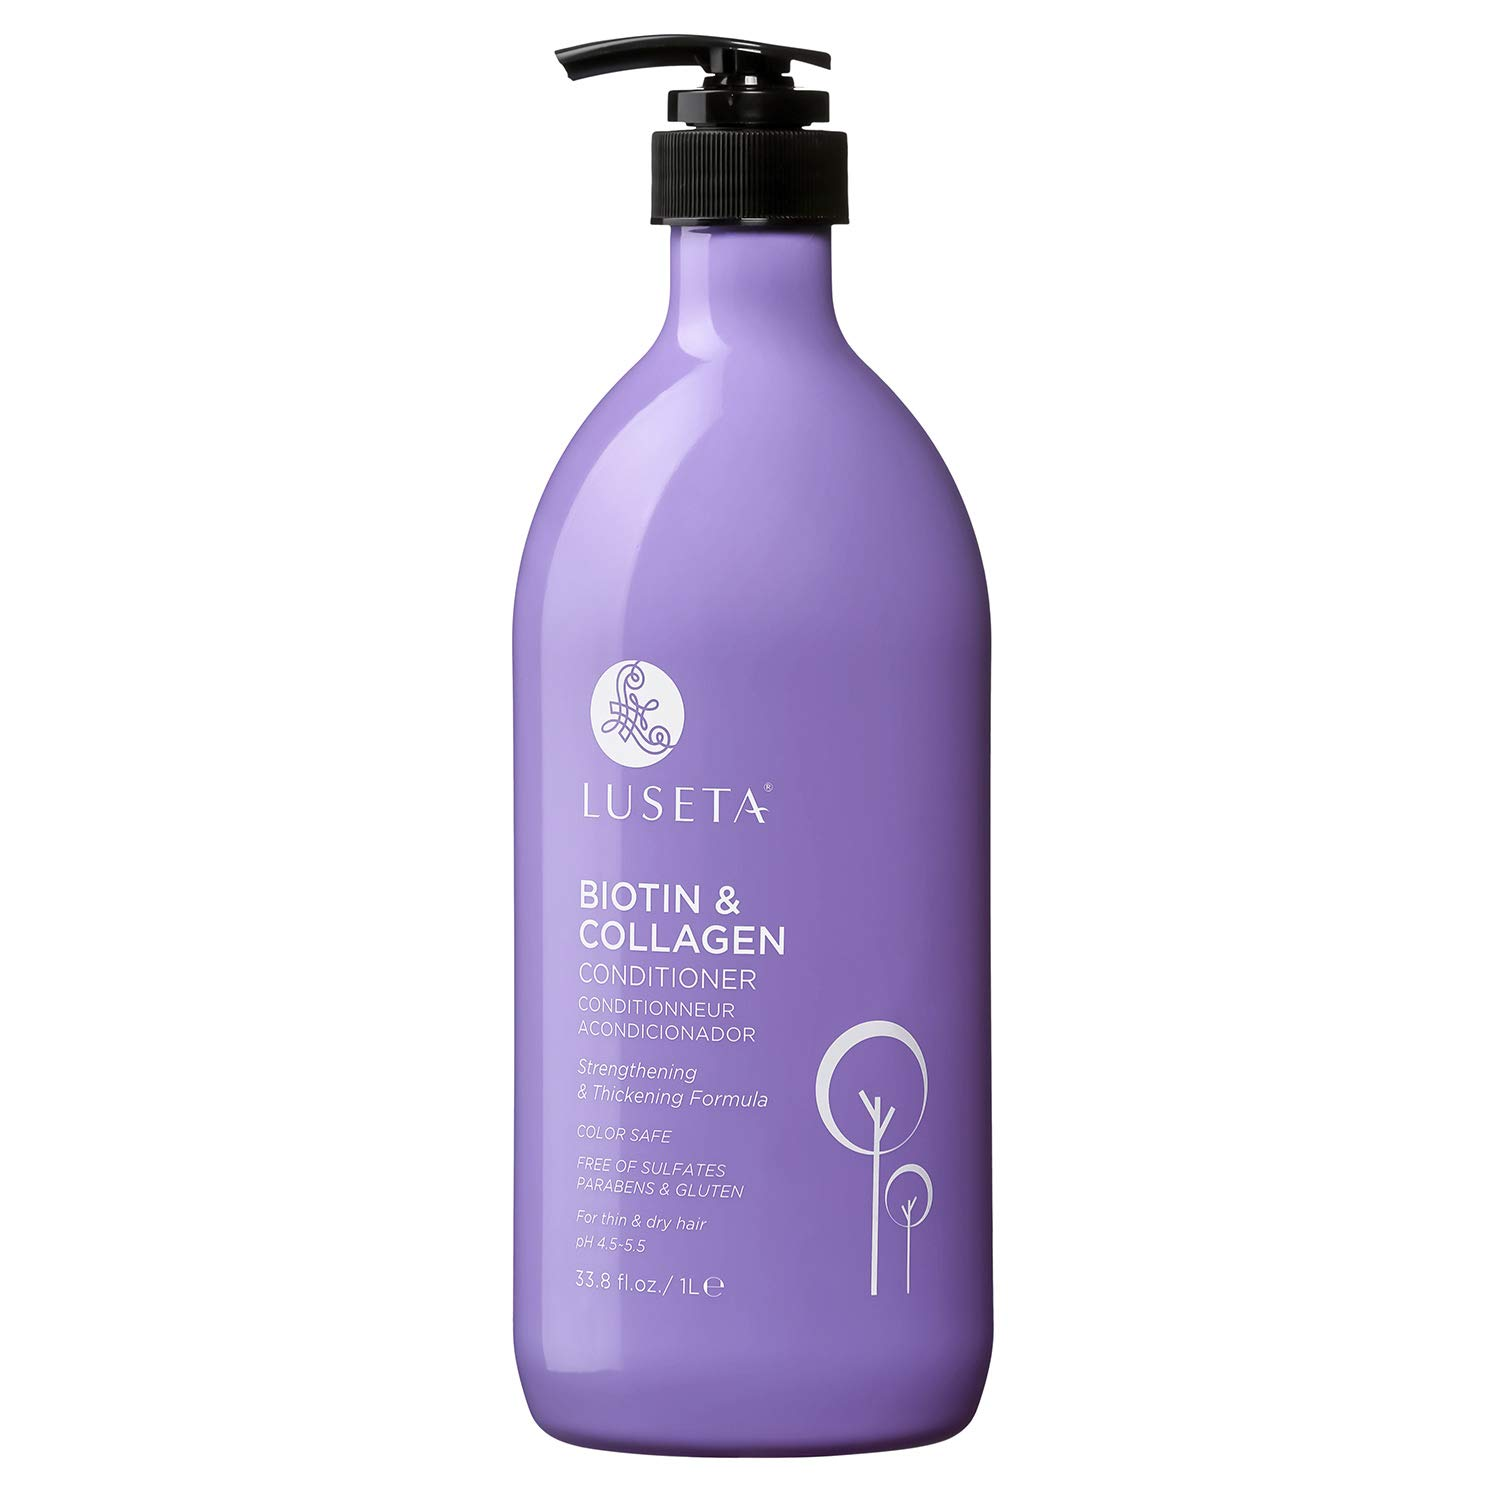 Luseta Biotin & Collagen Conditioner Thickening for Hair Loss & Fast Hair Growth - Infused with Argan Oil to Repair Damaged Dry Hair - Sulfate Free Paraben Free 33.8oz by L LUSETA